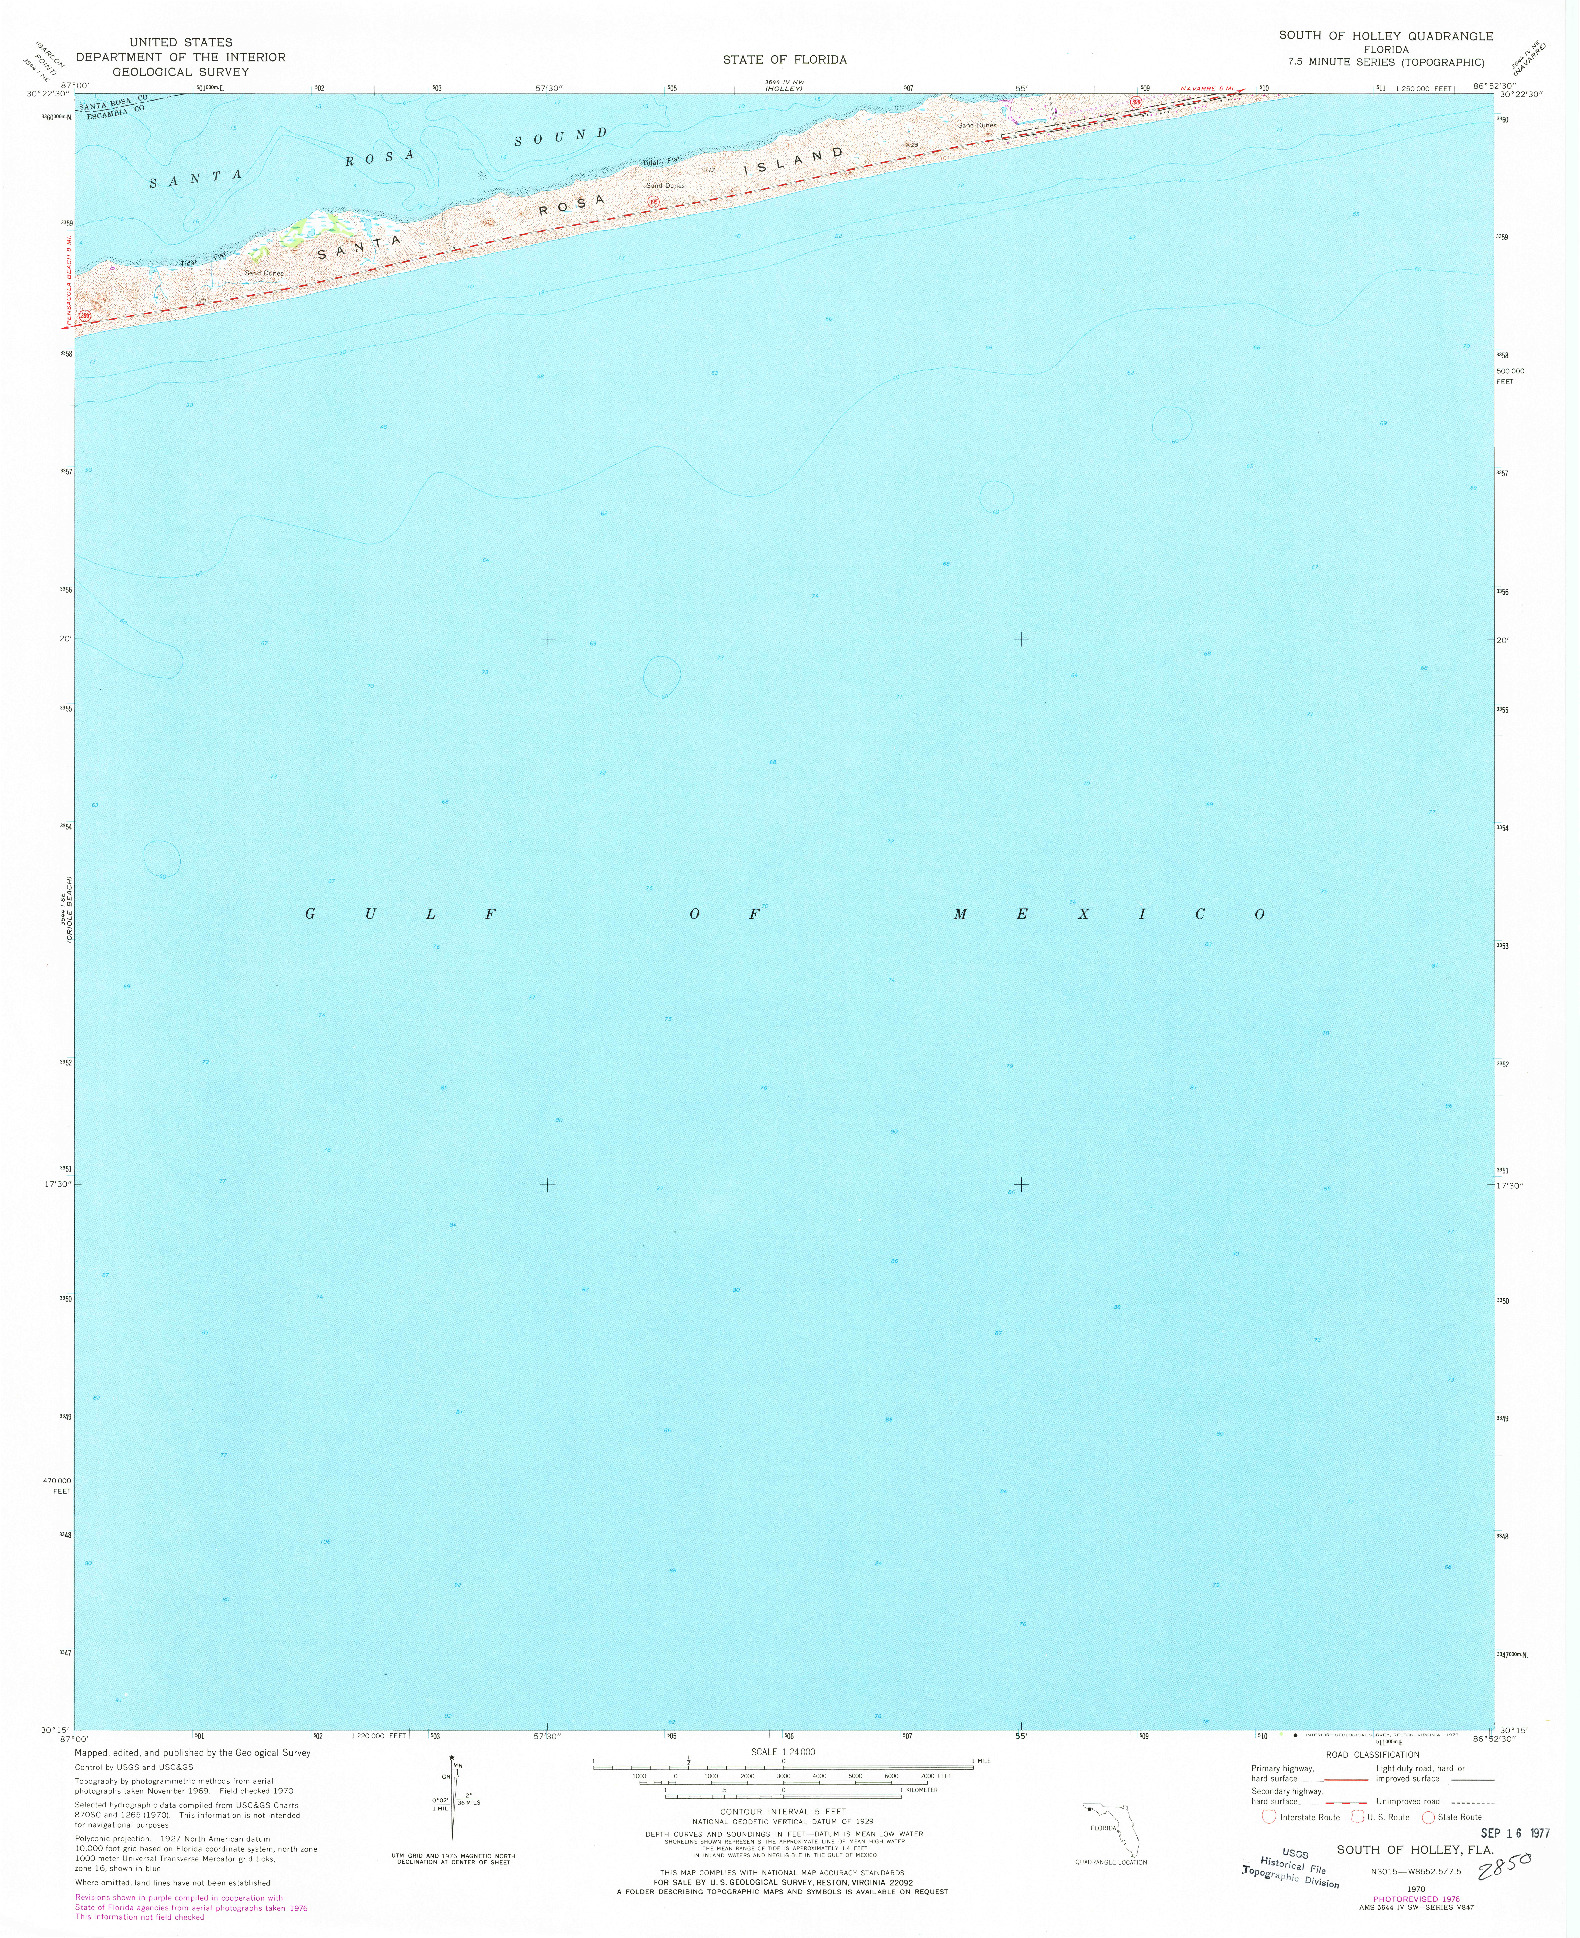 USGS 1:24000-SCALE QUADRANGLE FOR SOUTH OF HOLLEY, FL 1970